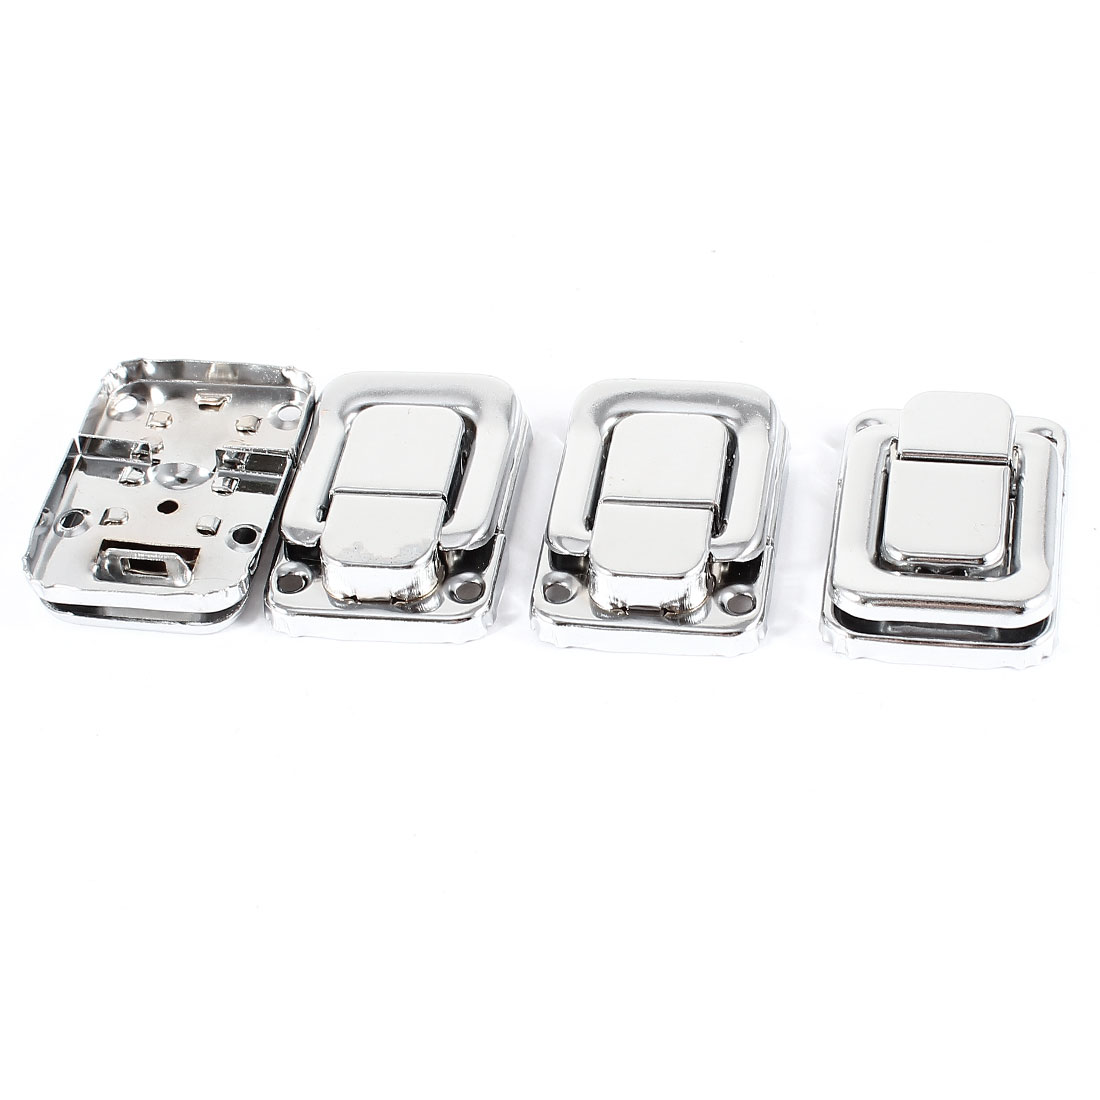 Cases Boxes Chest Silver Tone Spring Loaded Toggle Catch Lacth 4pcs